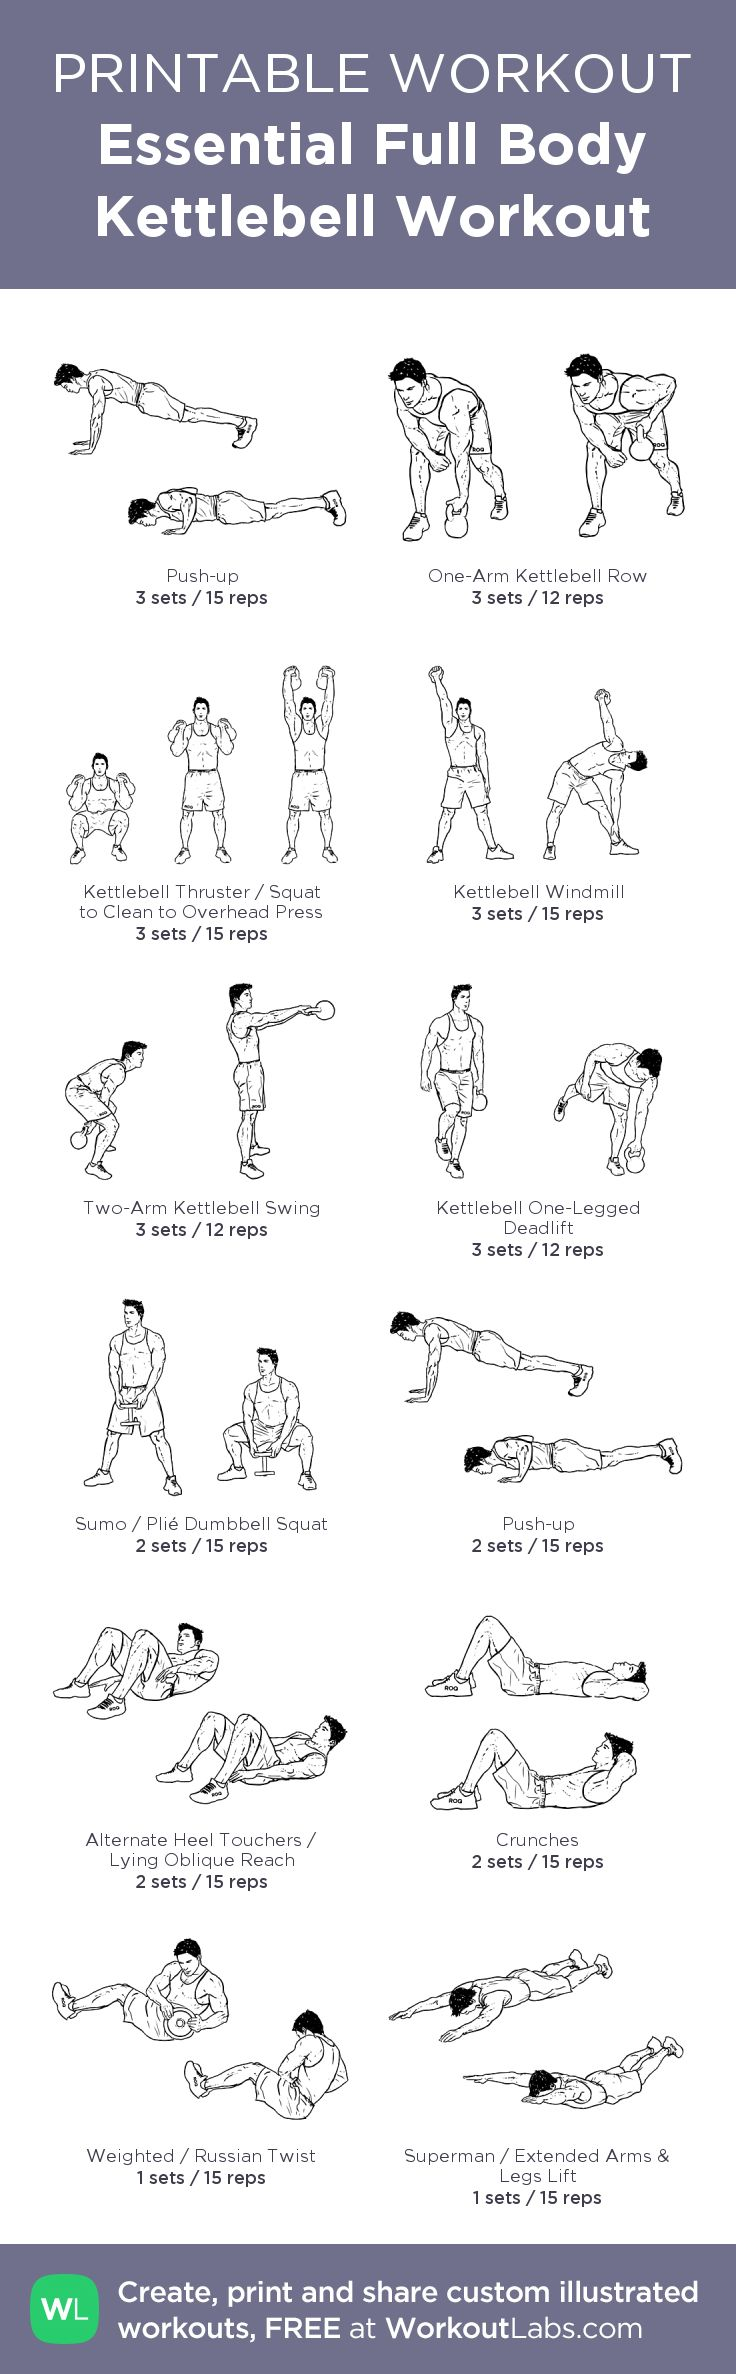 Delicate image with printable kettlebell workout